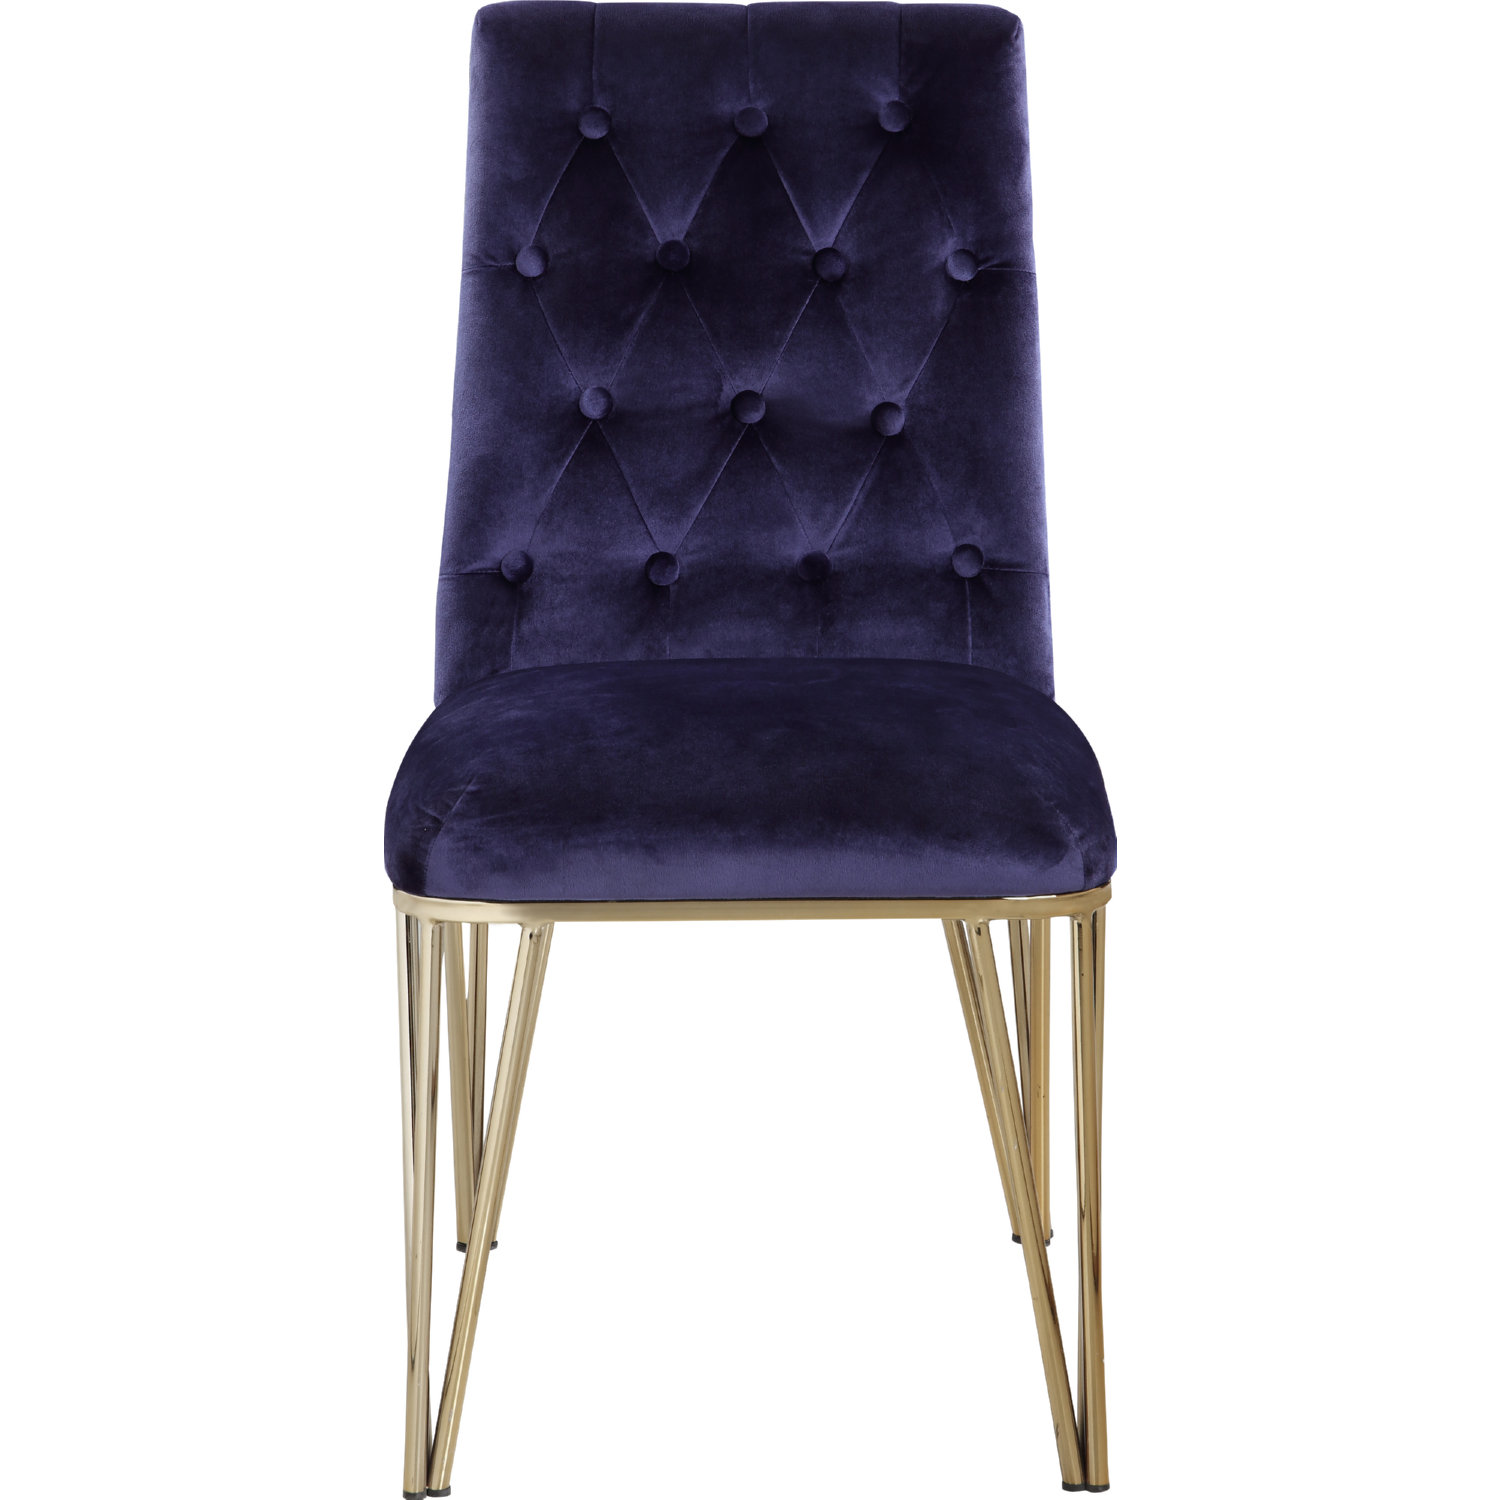 hight resolution of chic home fdc9121 dr callahan dining chair in tufted navy velvet on gold metal set of 2